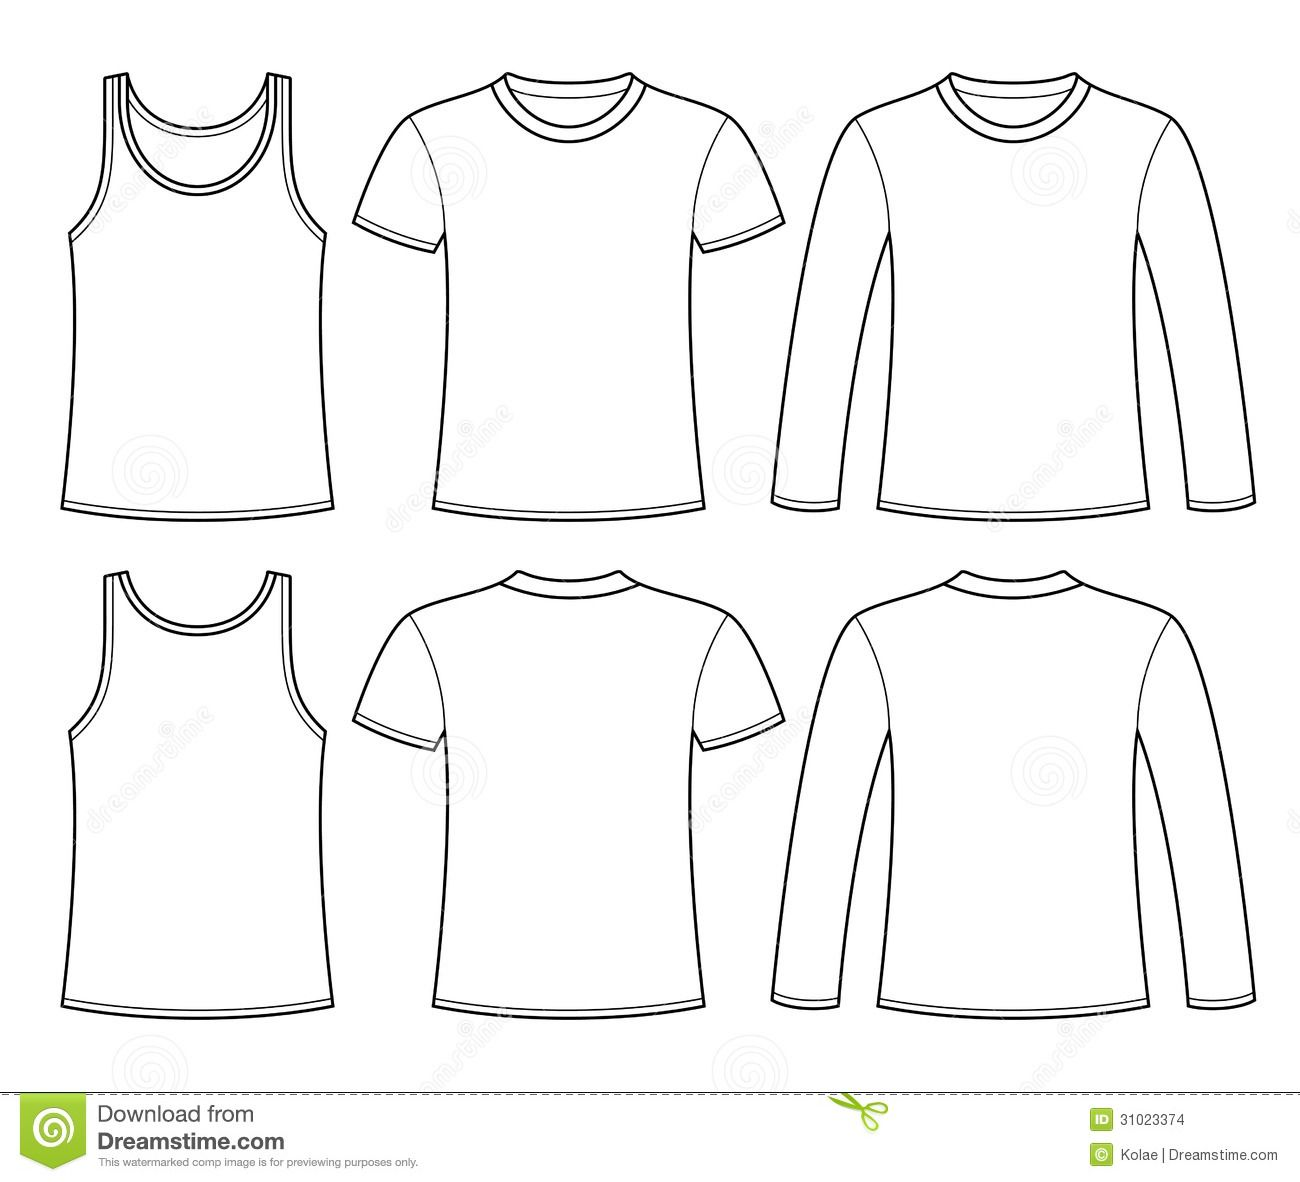 Shirt Templates For Kids To Design Their Own Clothes